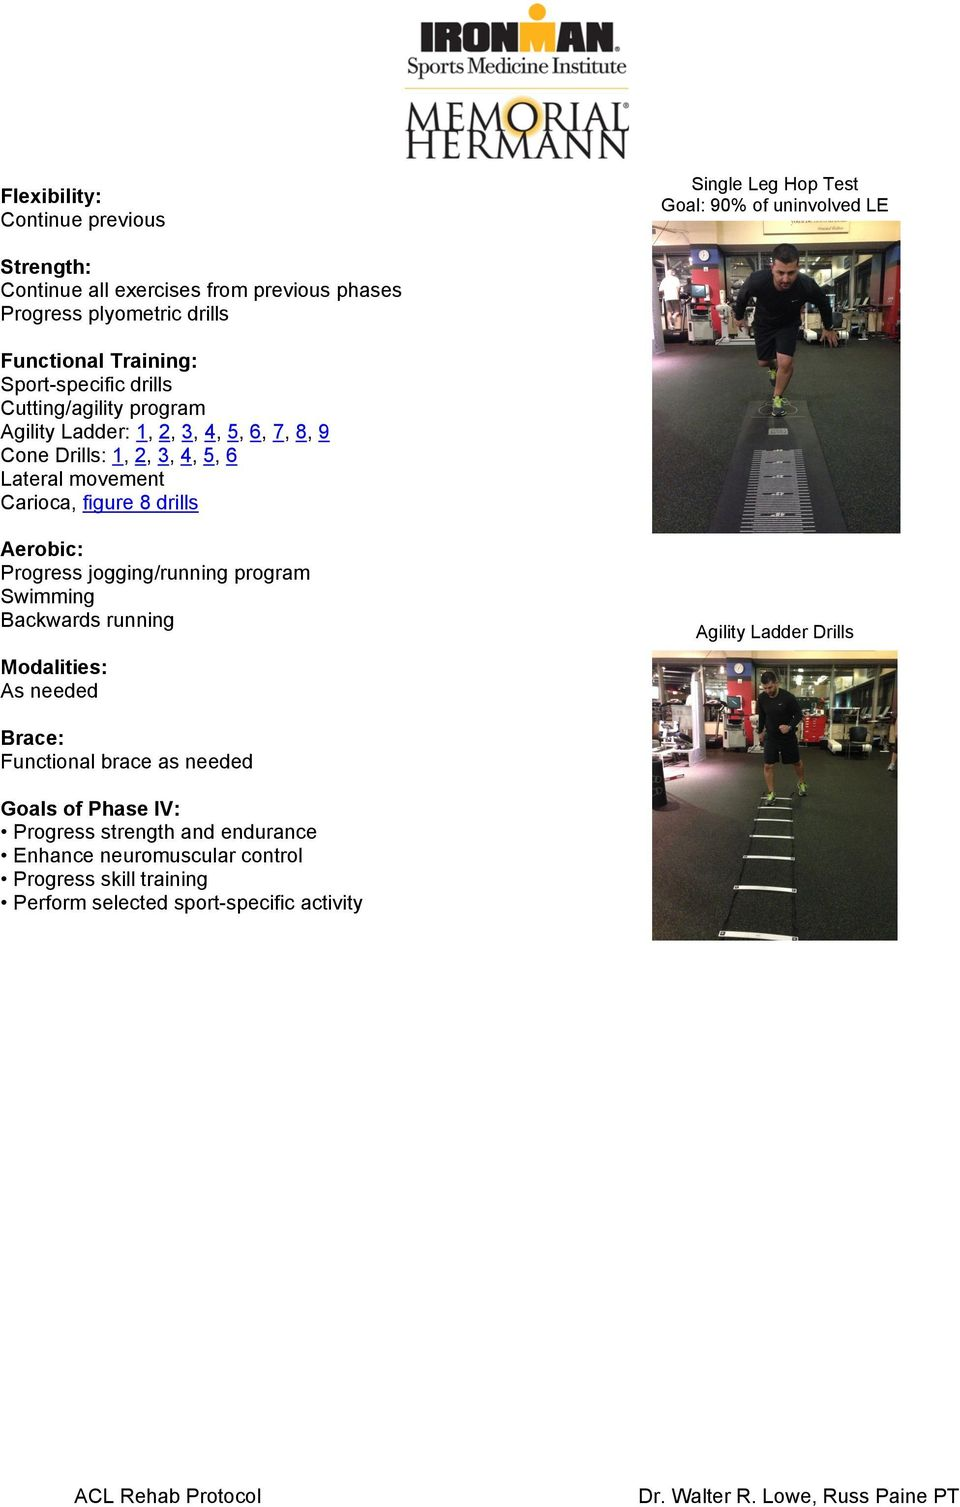 Carioca, figure 8 drills Aerobic: Progress jogging/running program Swimming Backwards running Agility Ladder Drills As needed Functional brace